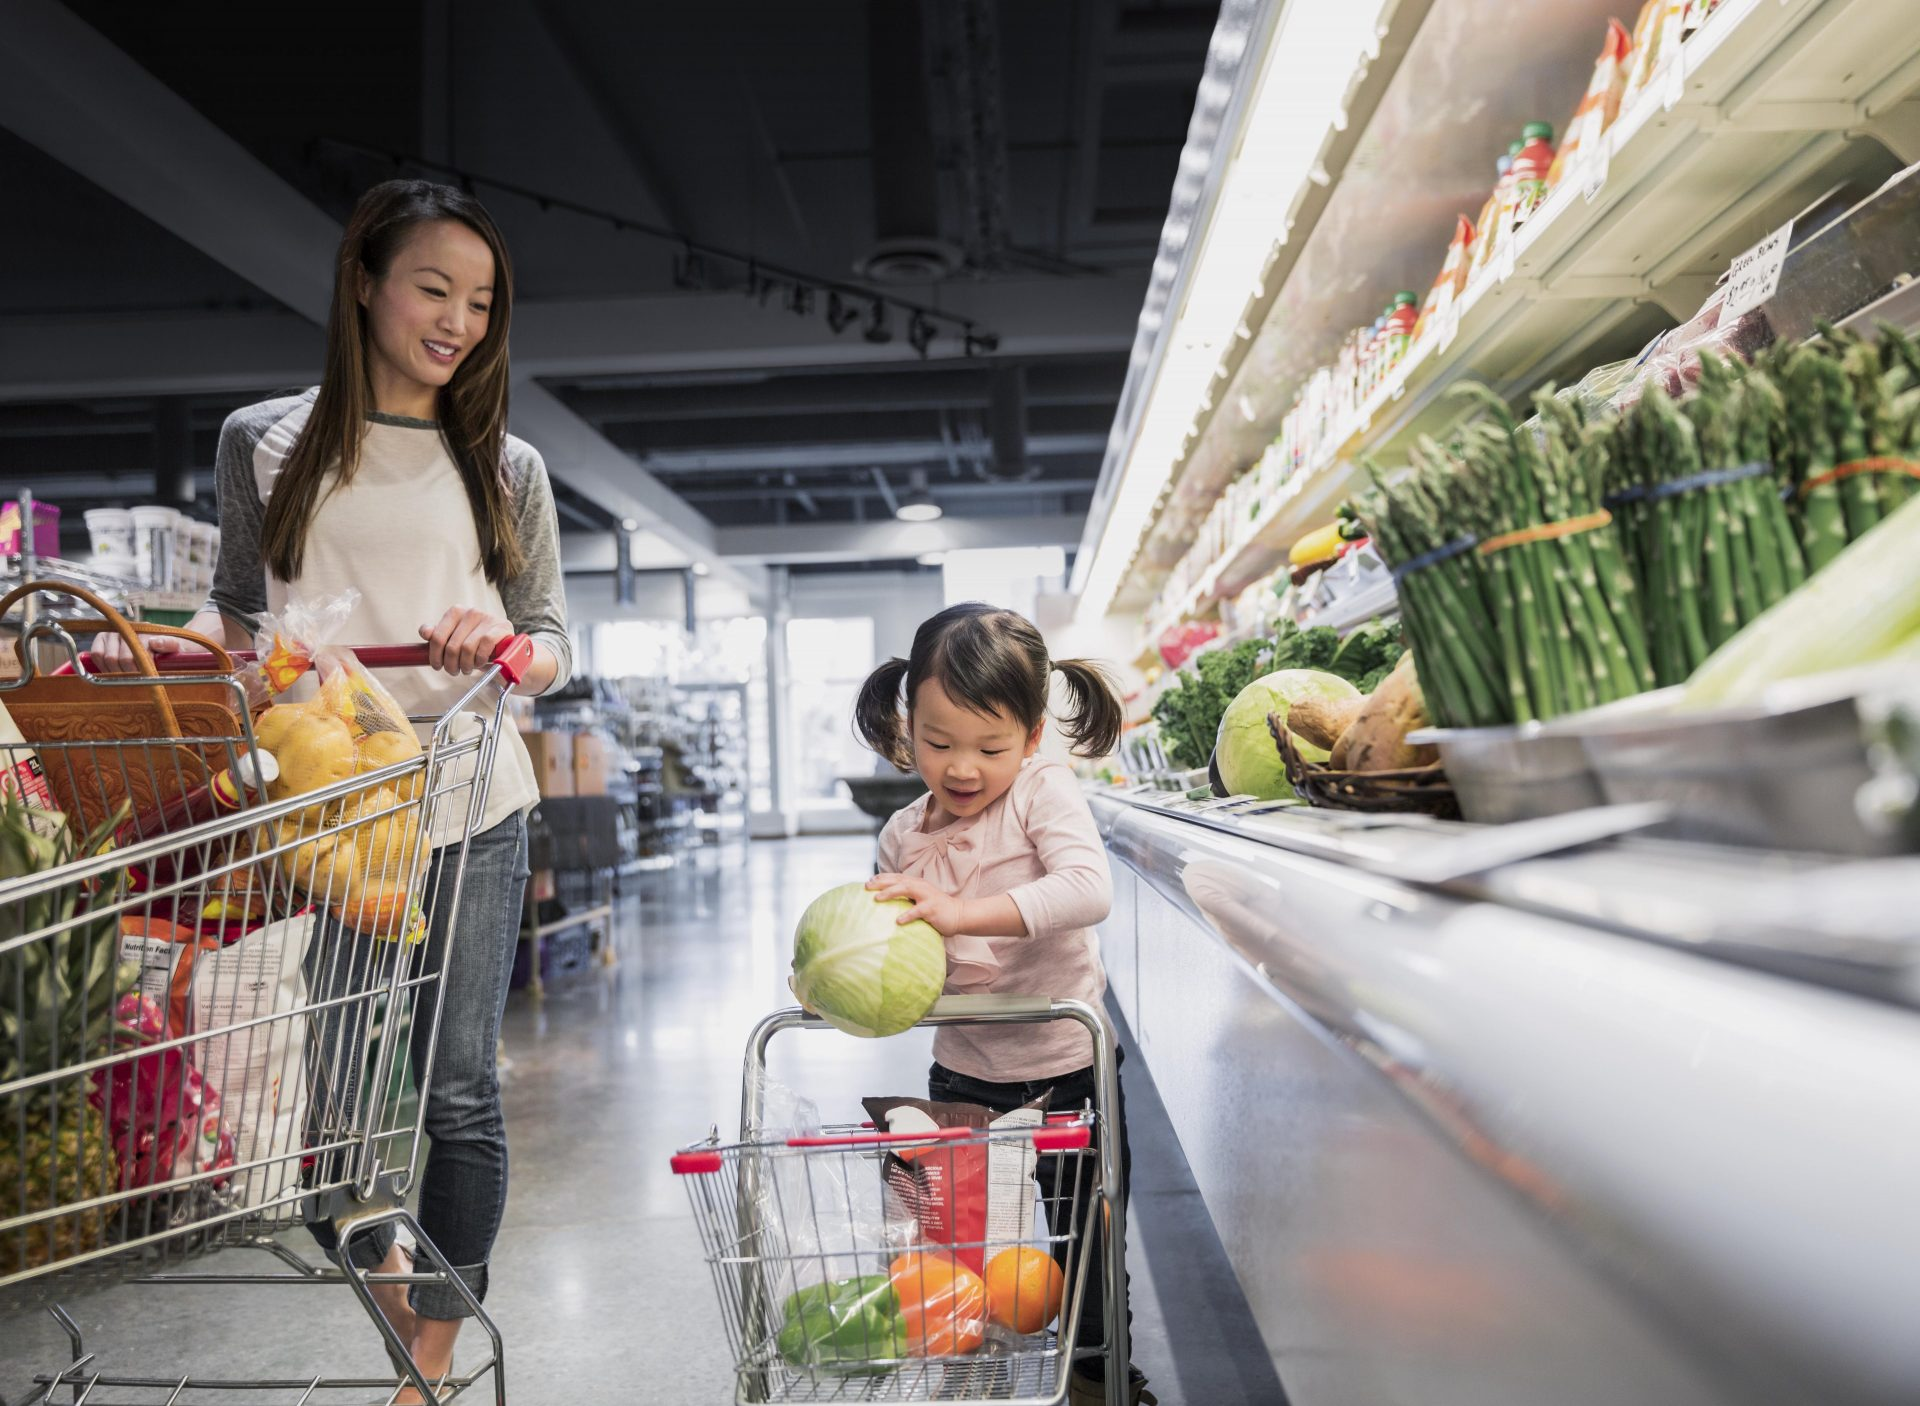 Mother Watching Daughter Place Melon In Shopping Cart